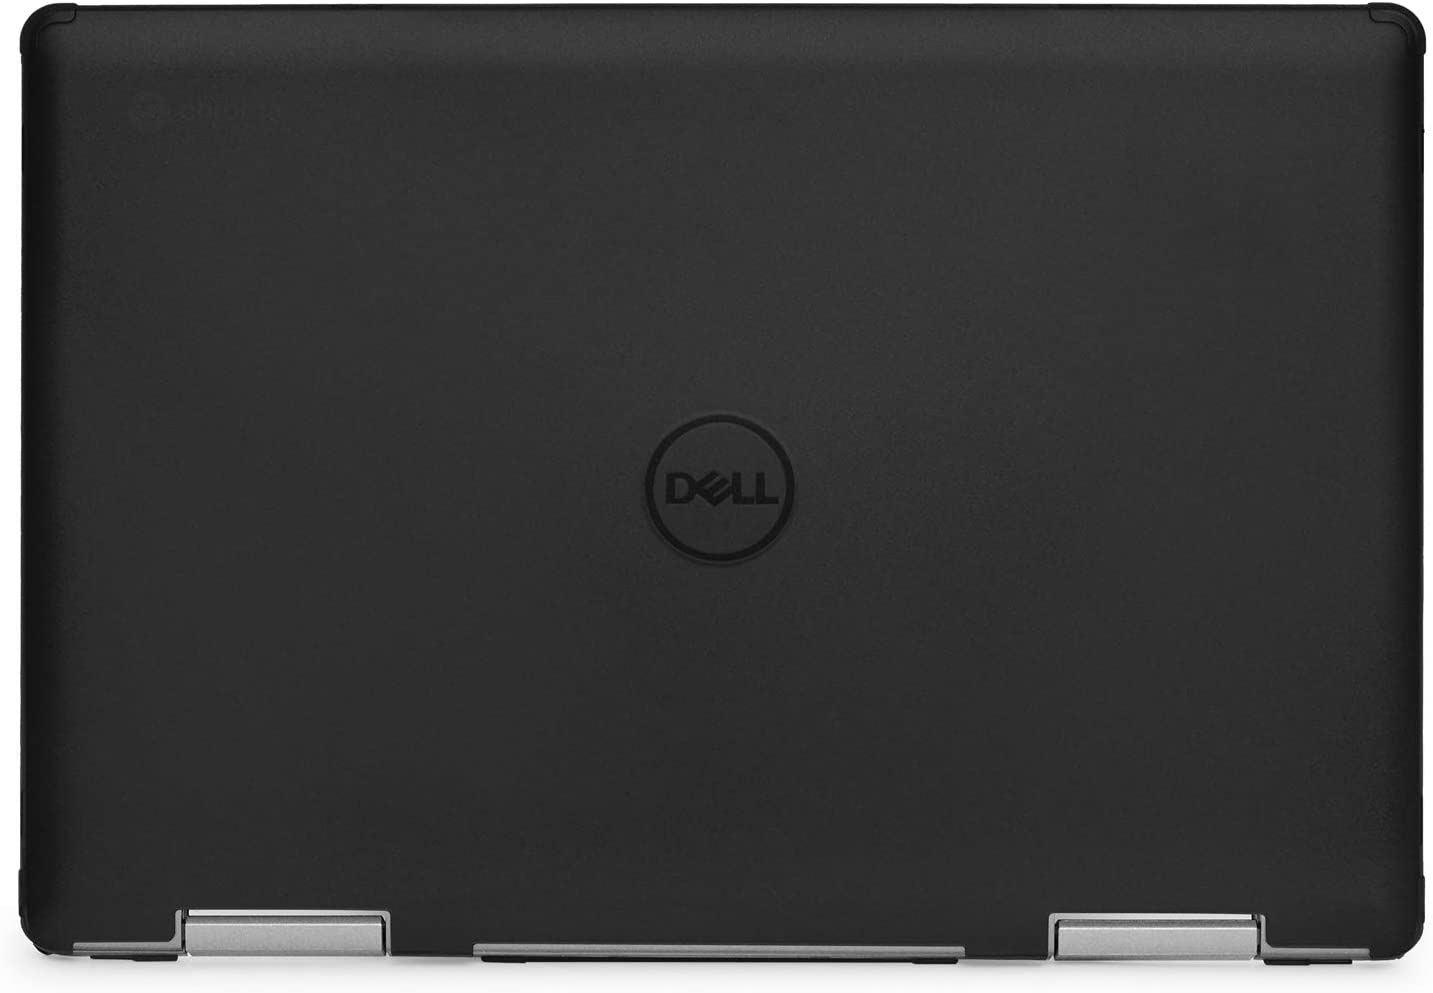 "mCover Hard Shell Case for 14"" Dell Chromebook 14 7486 2-in-1 Series Laptop (NOT Compatible with Other 11.6-inch / 13-inch Dell Chromebook Series) (Black)"